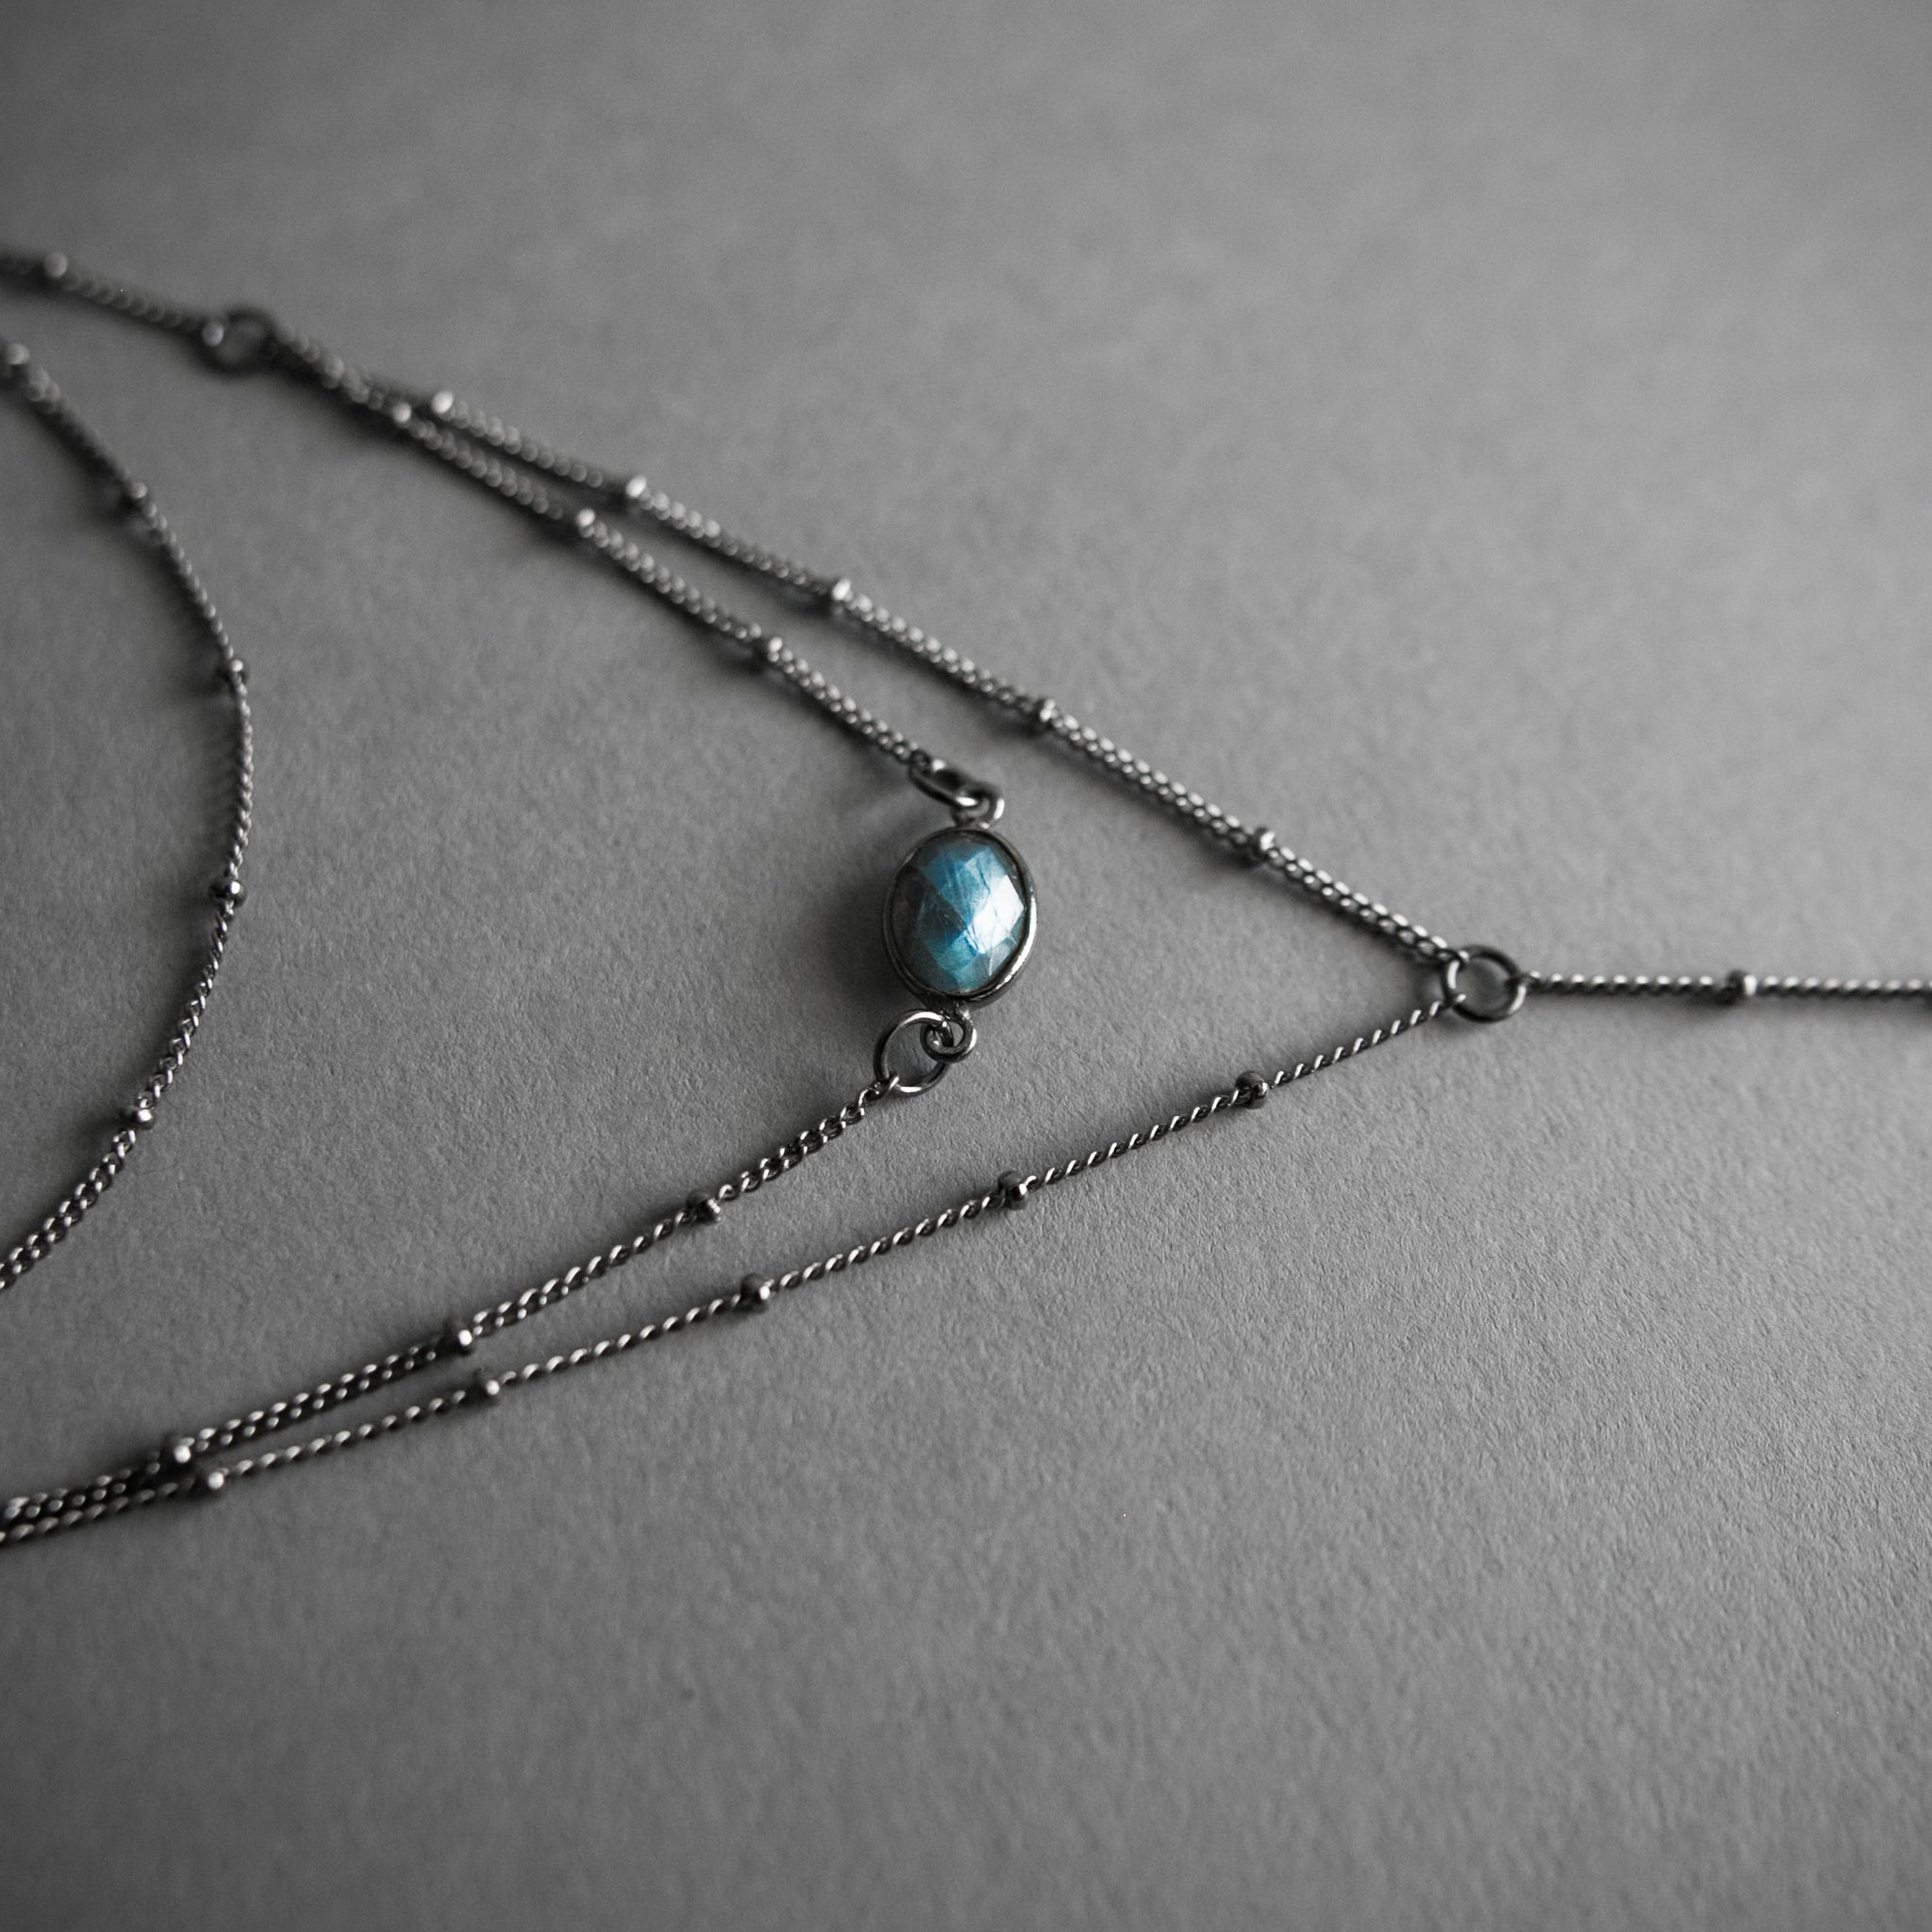 Layered Labradorite Lariat Necklace, Jewelry, Iron Oxide - Altar PDX